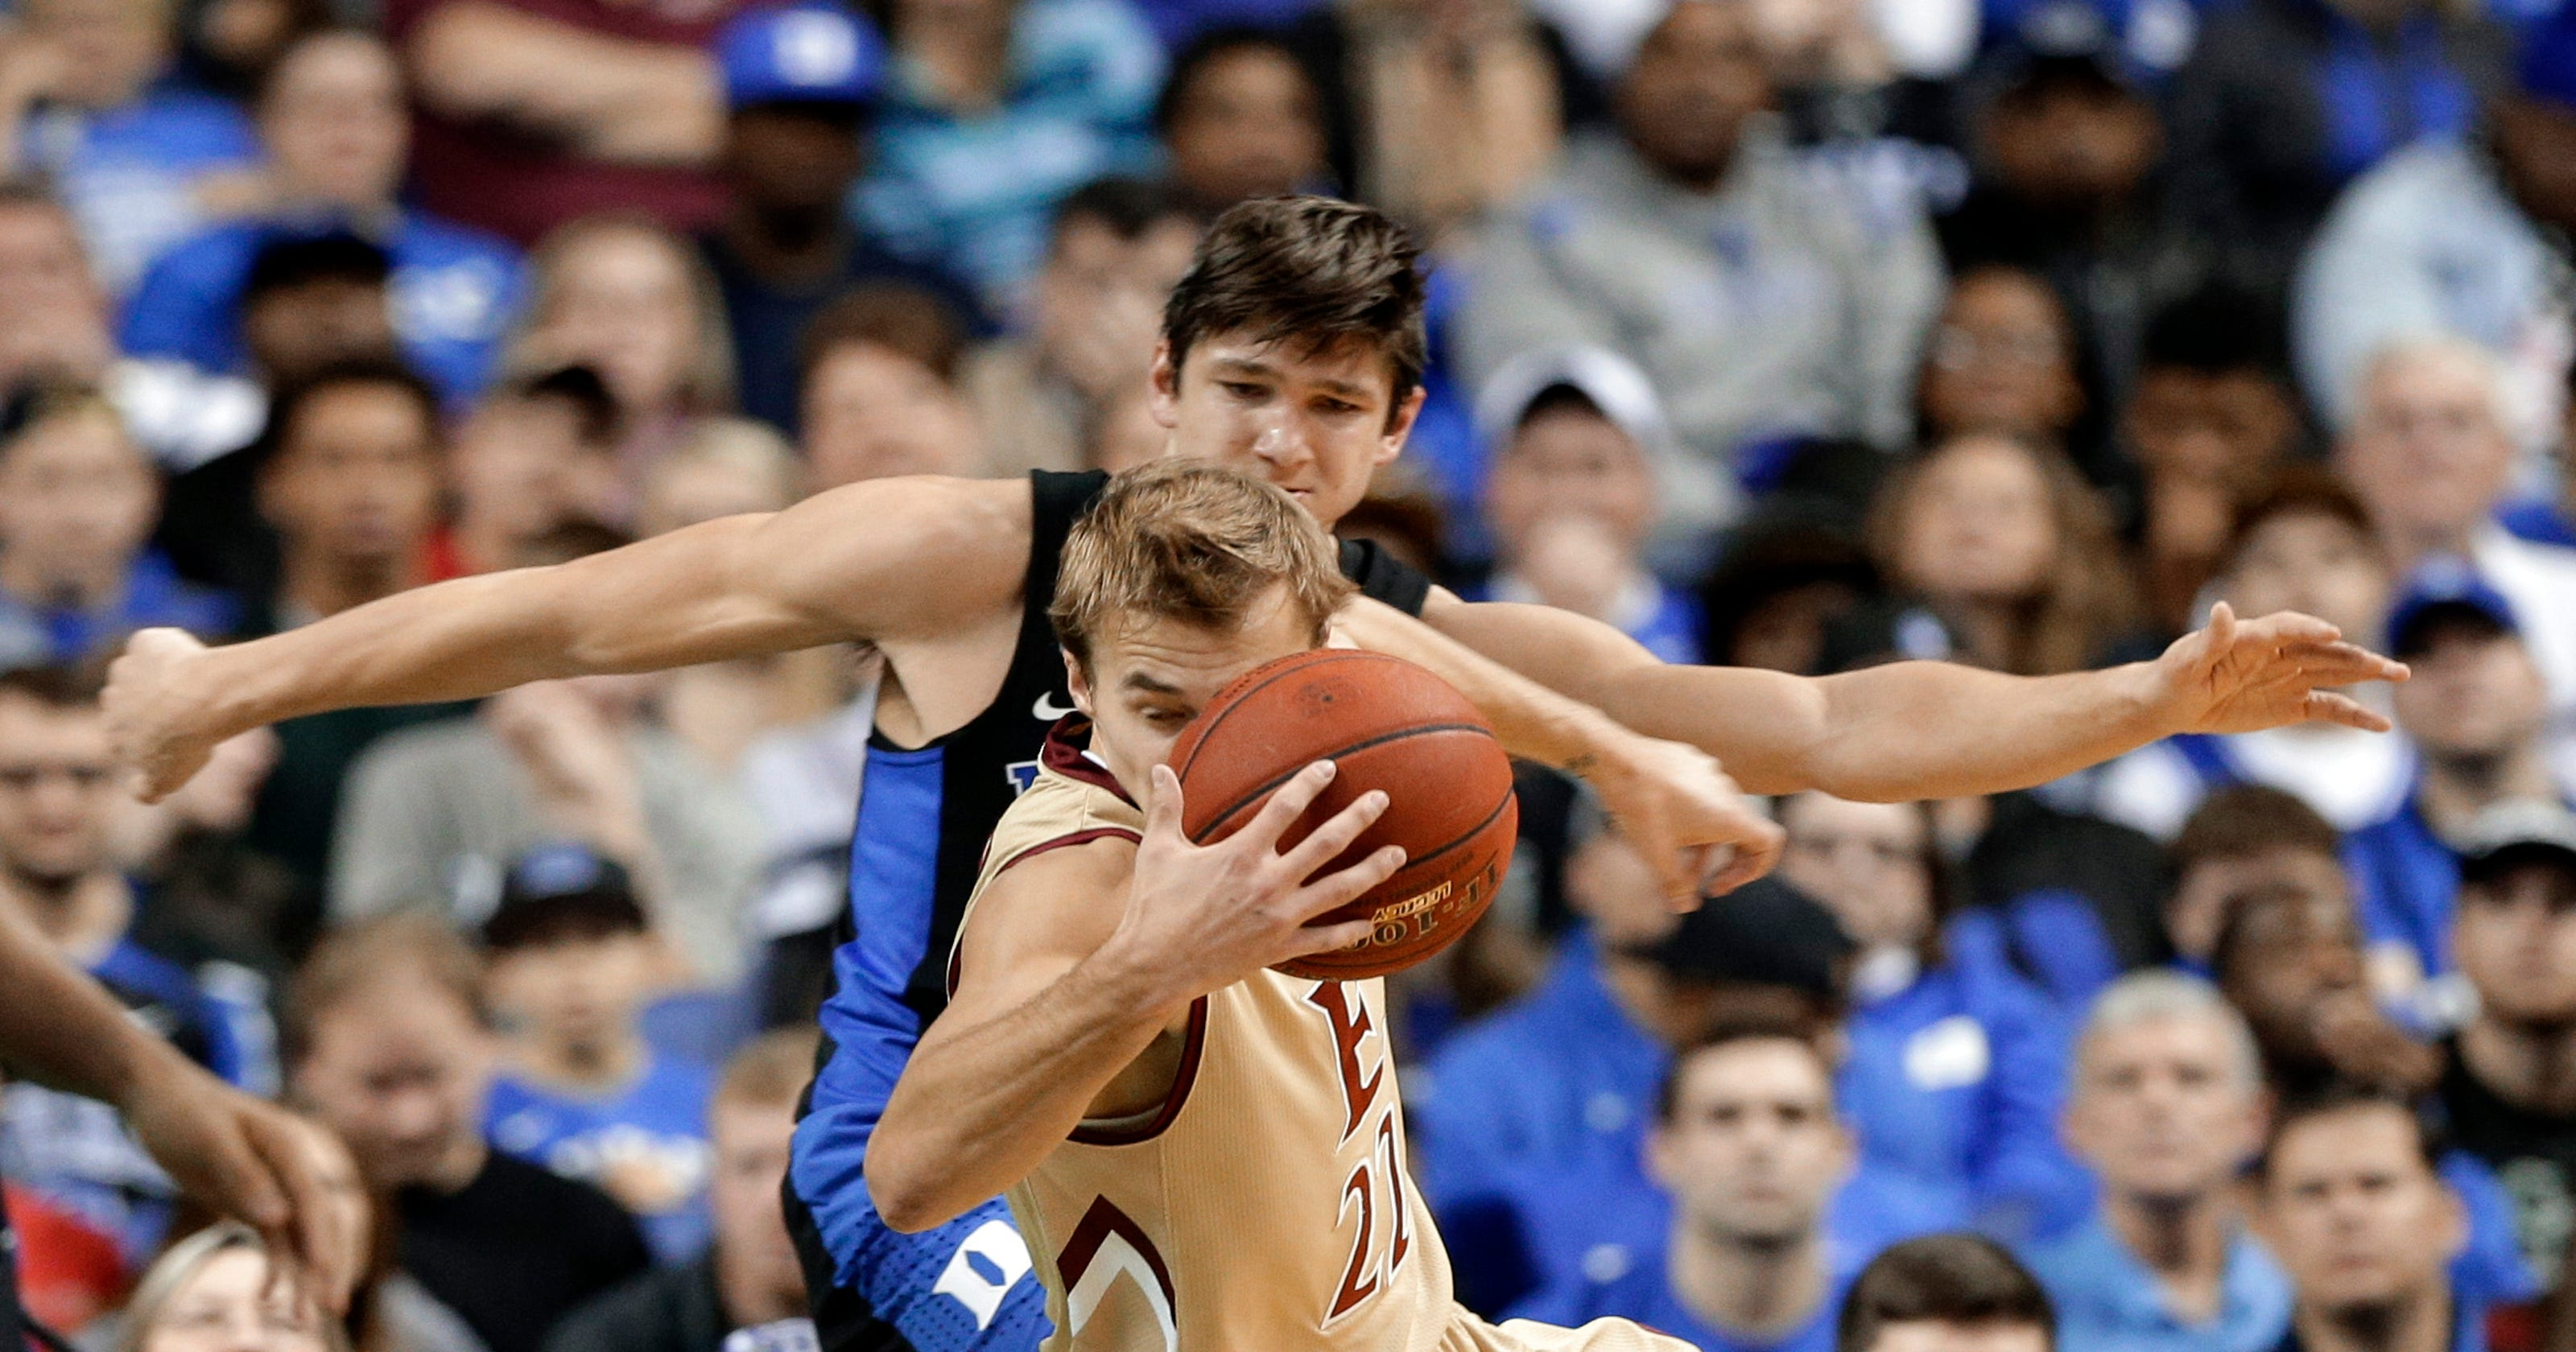 ACC needs to step in and suspend Duke\'s Grayson Allen